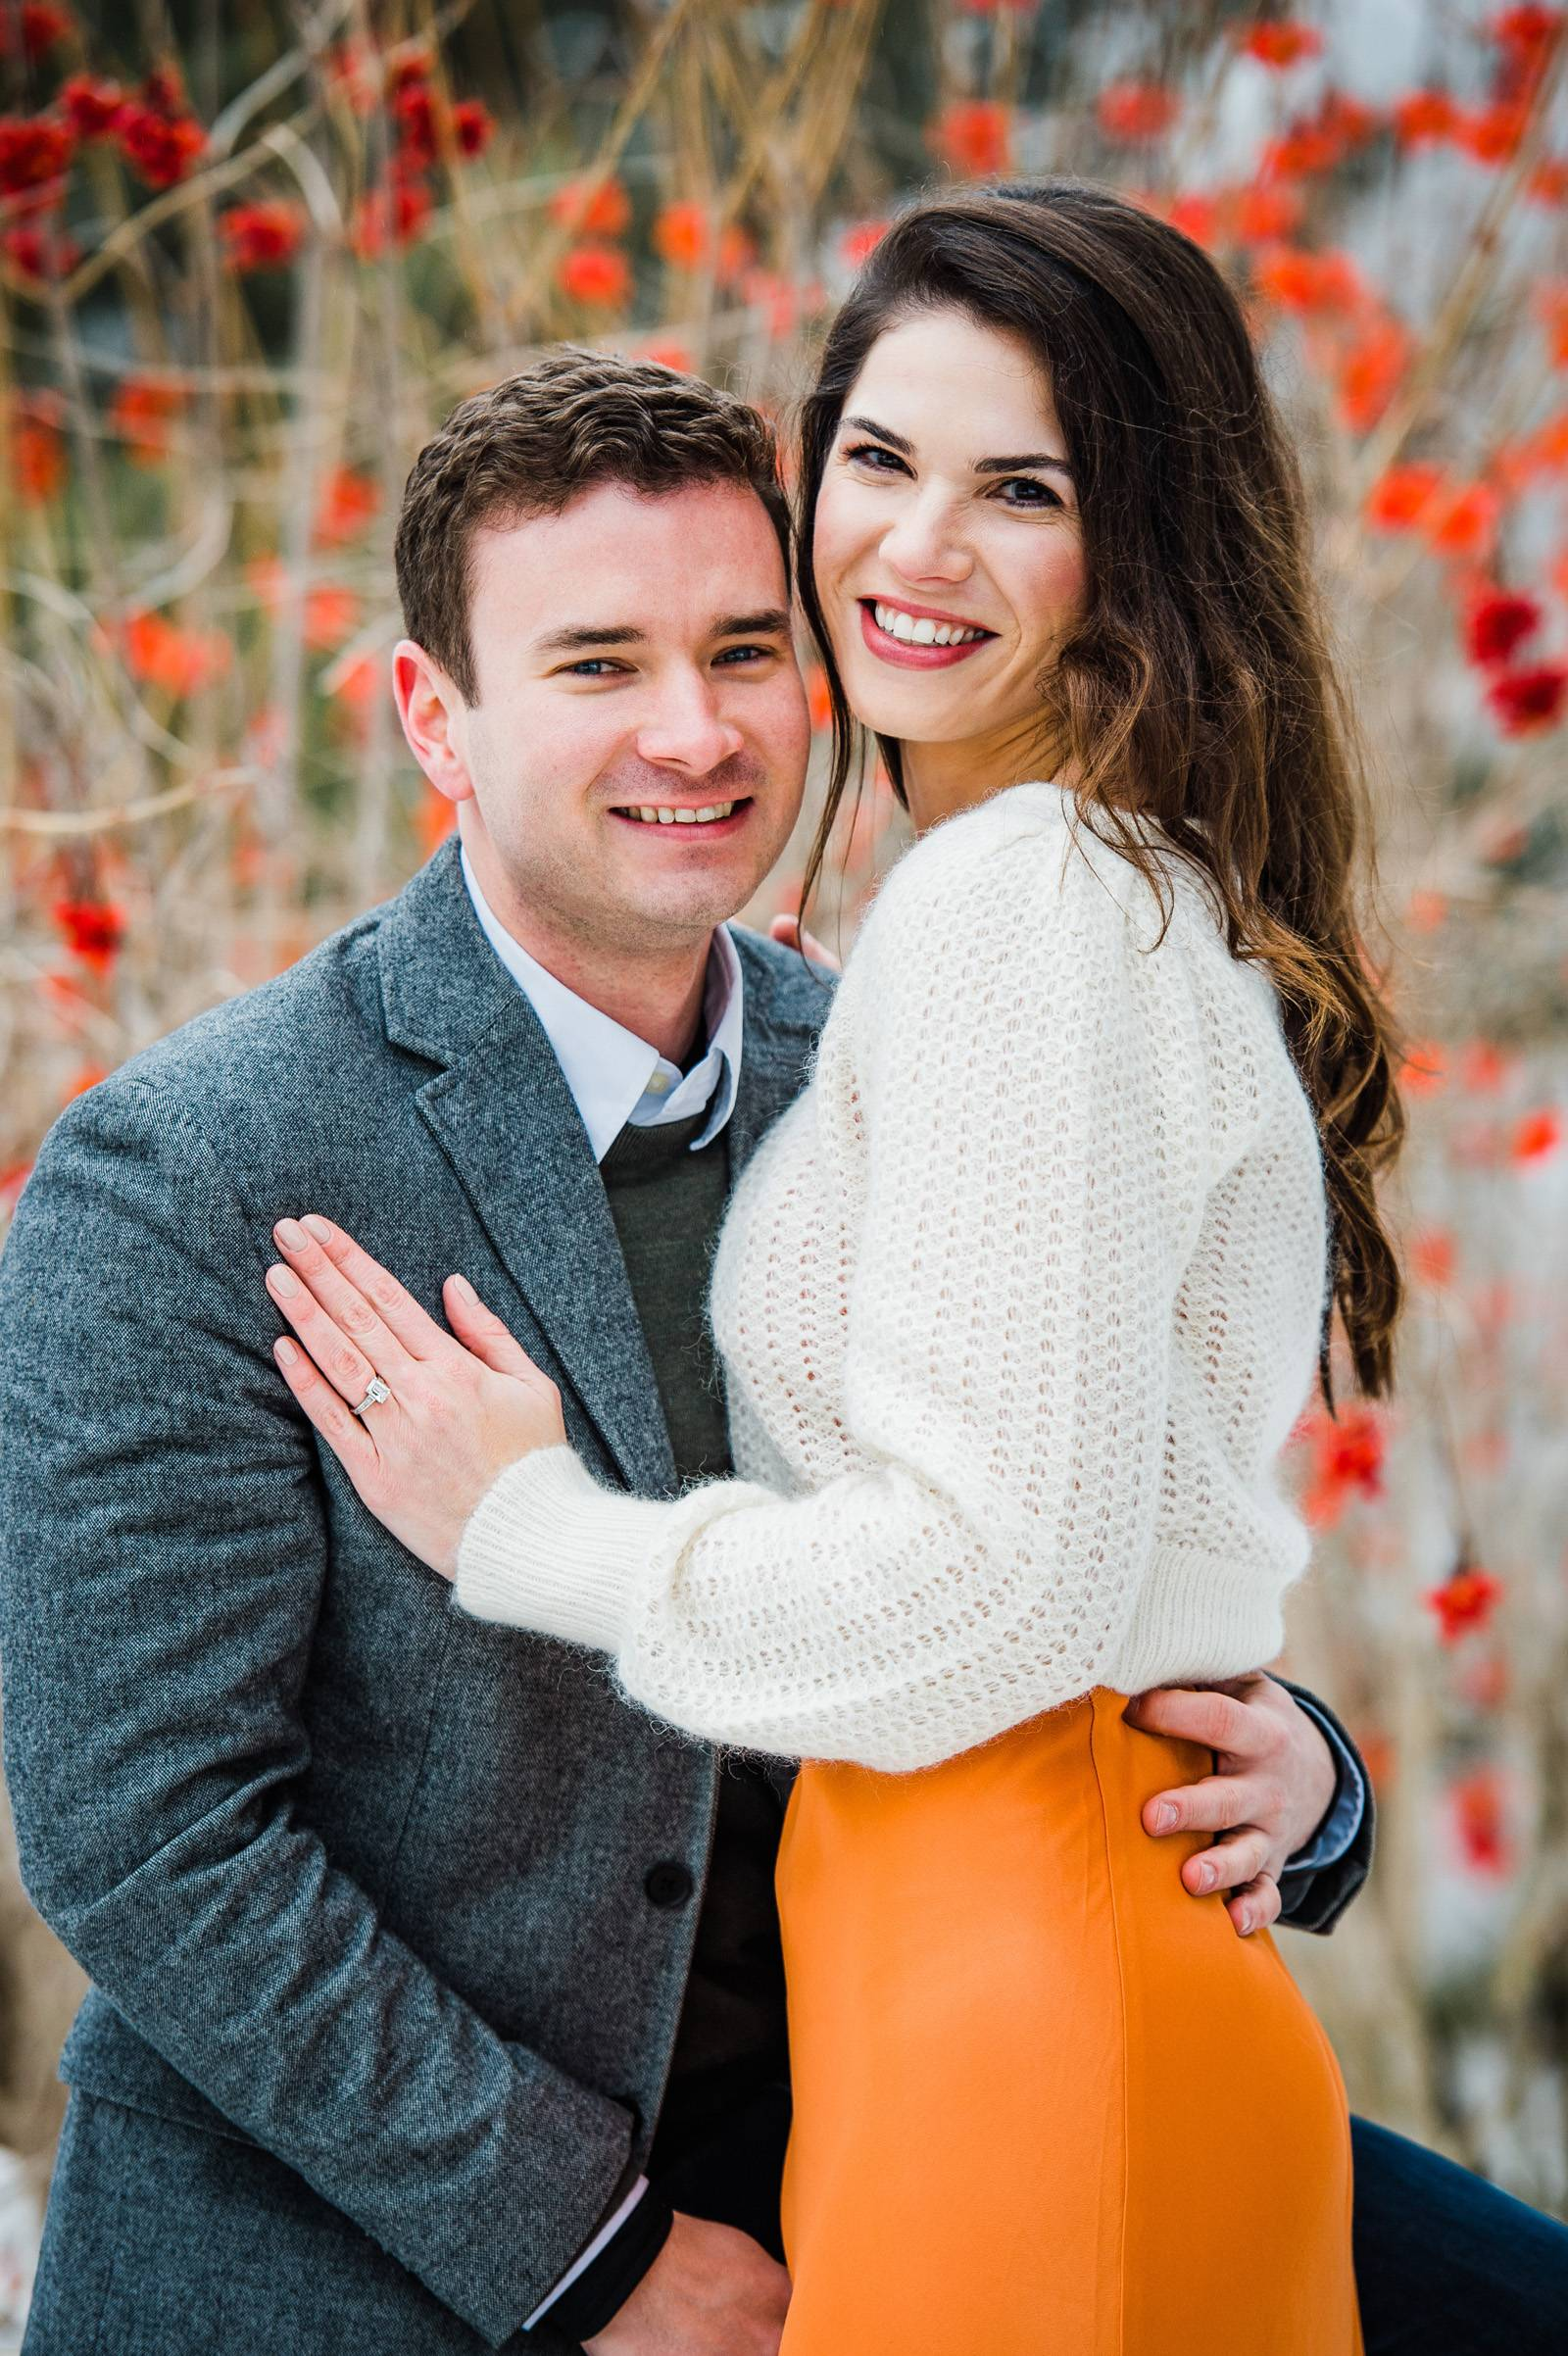 Engagement photography pose ideas for couples